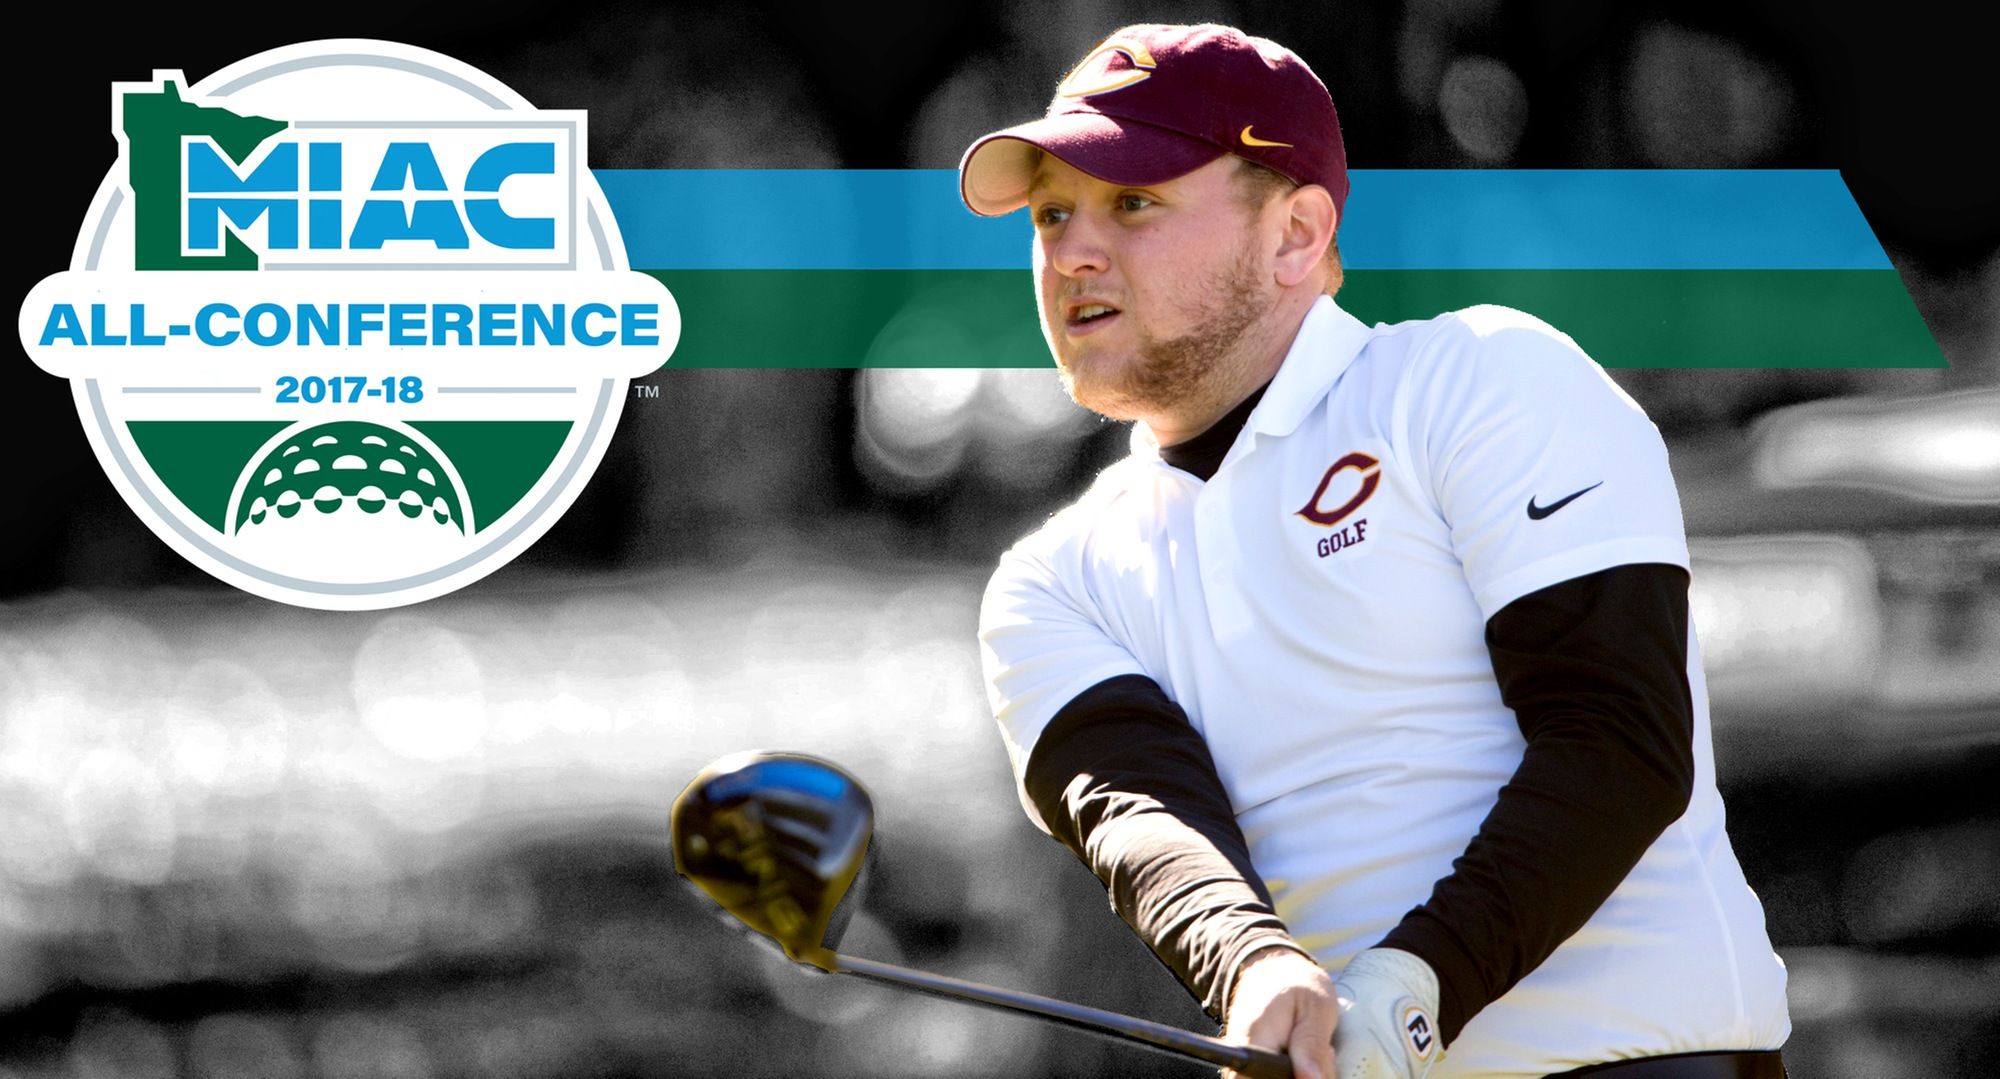 Junior Nate Kahlbaugh was officially named to the MIAC All-Conference team becoming the 12th Cobber to earn All-Conference honors since 2008.